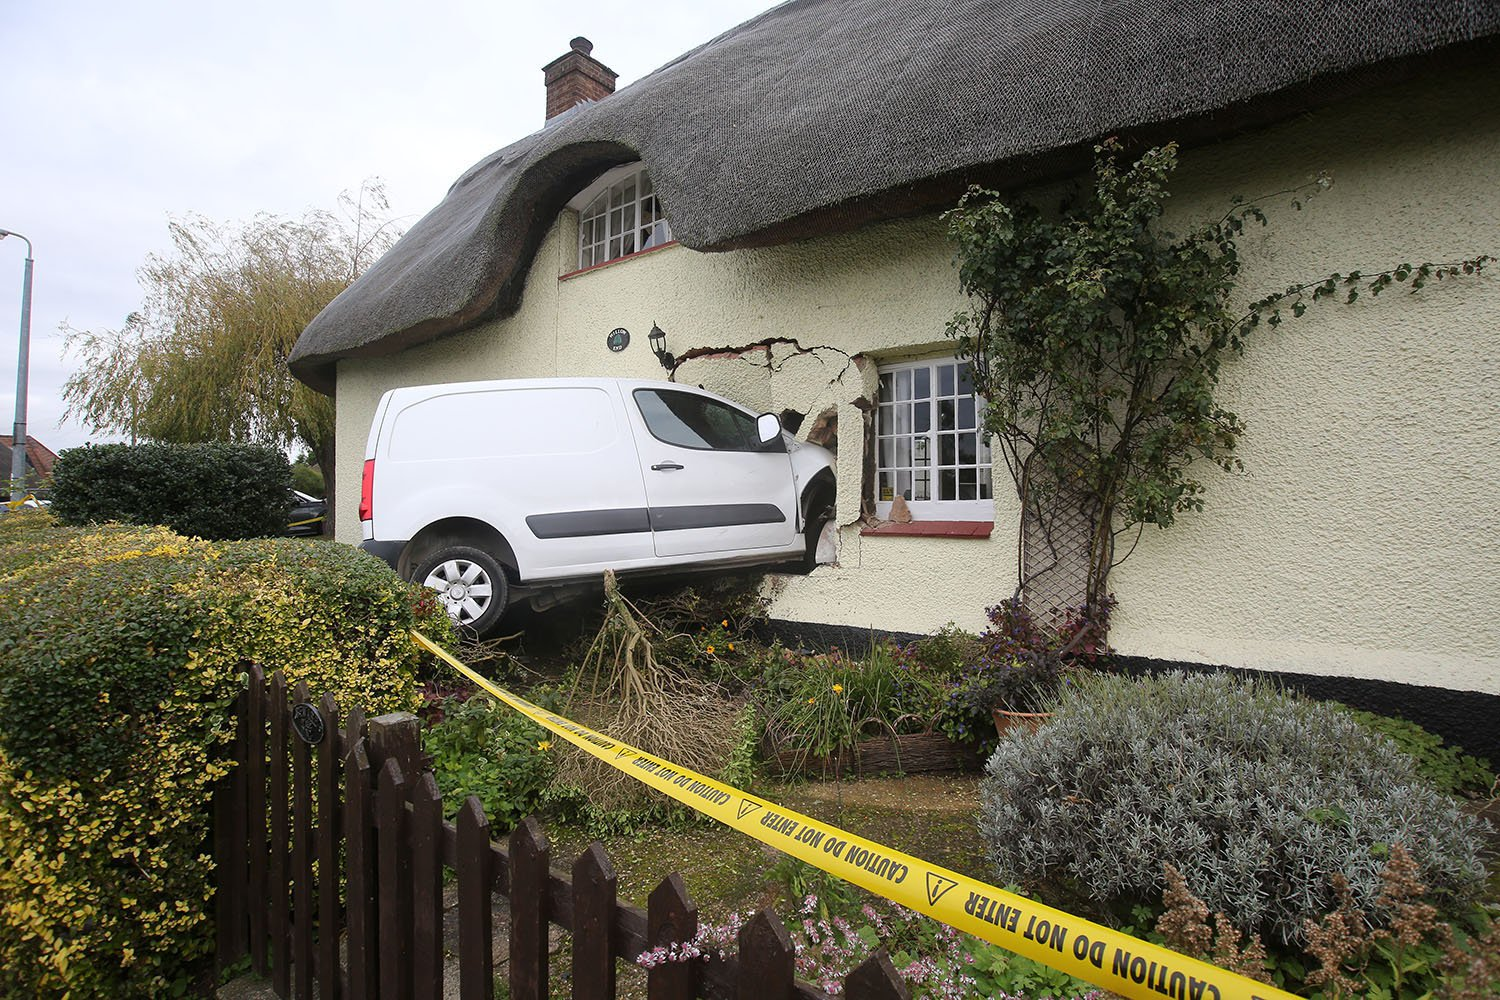 """south beds news agency-luton-(fairleys)...vna and cottage From: Fairley of Luton South Beds News Agency/Fairley of Luton Tel: 01582 572222 Email: southbedsnews@btconnect.com A driver who was high on cocaine could have killed a couple when he ploughed a white van into their thatched cottage. Jamie Gilroy, 35, came off a bend, crossed a grass verge, and went through a hedge before embedding the Berlingo van in the front of the 16th-century ??500,000 listed cottage. At Luton crown crown court on Friday, Gilroy of Harrow Piece, Maulden, Beds was jailed for 14 months and banned from driving for 60 months, from the time he is released from prison. He pleaded guilty to dangerous driving. The crash happened at about a quarter to eleven at night as Steven and Val Fossey were about to go to bed at their home Willow End on Ampthill Road in Maulden. Neighbours heard the noise and held Gilroy who had tried to escape. They tied up his legs with string until the police arrived. At the time Val, 67, said: """"We were in the living room at about a quarter to eleven. I was about to go up to bed, but my husband said to watch the end of the news. """"There was a dreadful noise - like an earthquake. This van came flying over a hedge and crashed into our hall and kitchen. If I had left the room I don't know what would have happened."""" Amazingly, Gilroy escaped unhurt from the wreckage. Val and Steve, a 66-year-old financial director, have lived in the pretty cottage for 14 years when the crash happened in October last year. Prosecutor Neil King said the repairs cost ??20,000. The couple had to pay their insurers at ??350 excess. They had to move out, but have now returned home. Val said: """"The driver got out of the van without a scratch. He was still in his work clothes. He tried to get away, but our neighbours held him until the police arrived. """"We are not right on the bend and we are about 20 yards from the road. He must have been going fast to go over the verge. One of"""